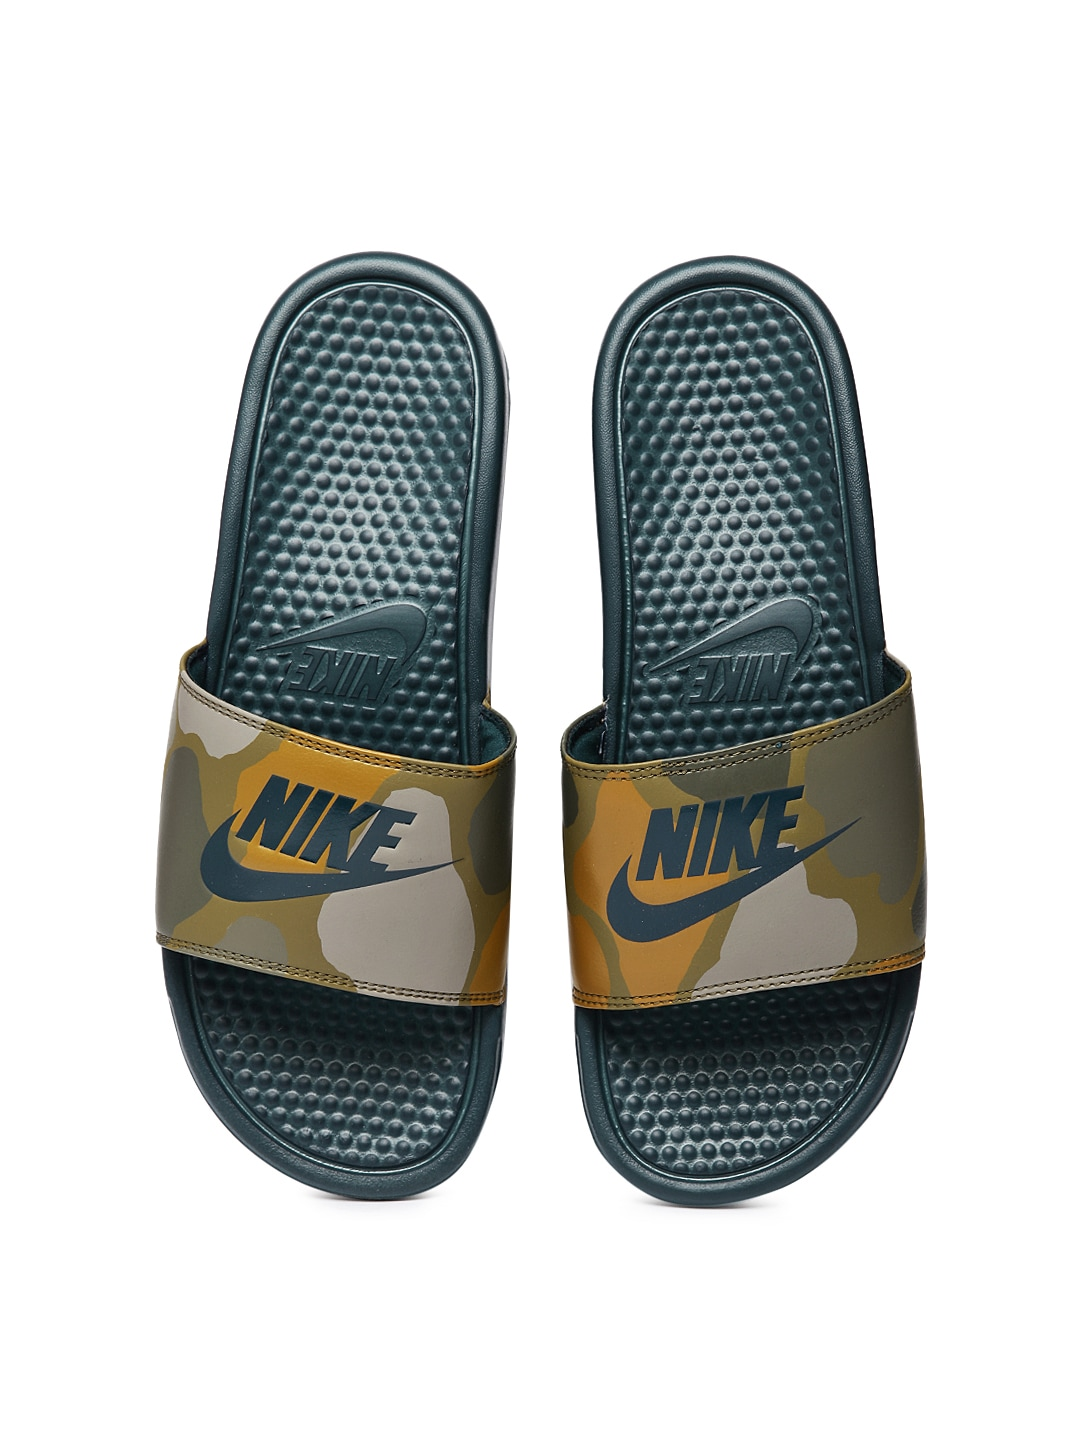 5698117be2bdad Nike Bags Backpacks Flip Flops - Buy Nike Bags Backpacks Flip Flops online  in India